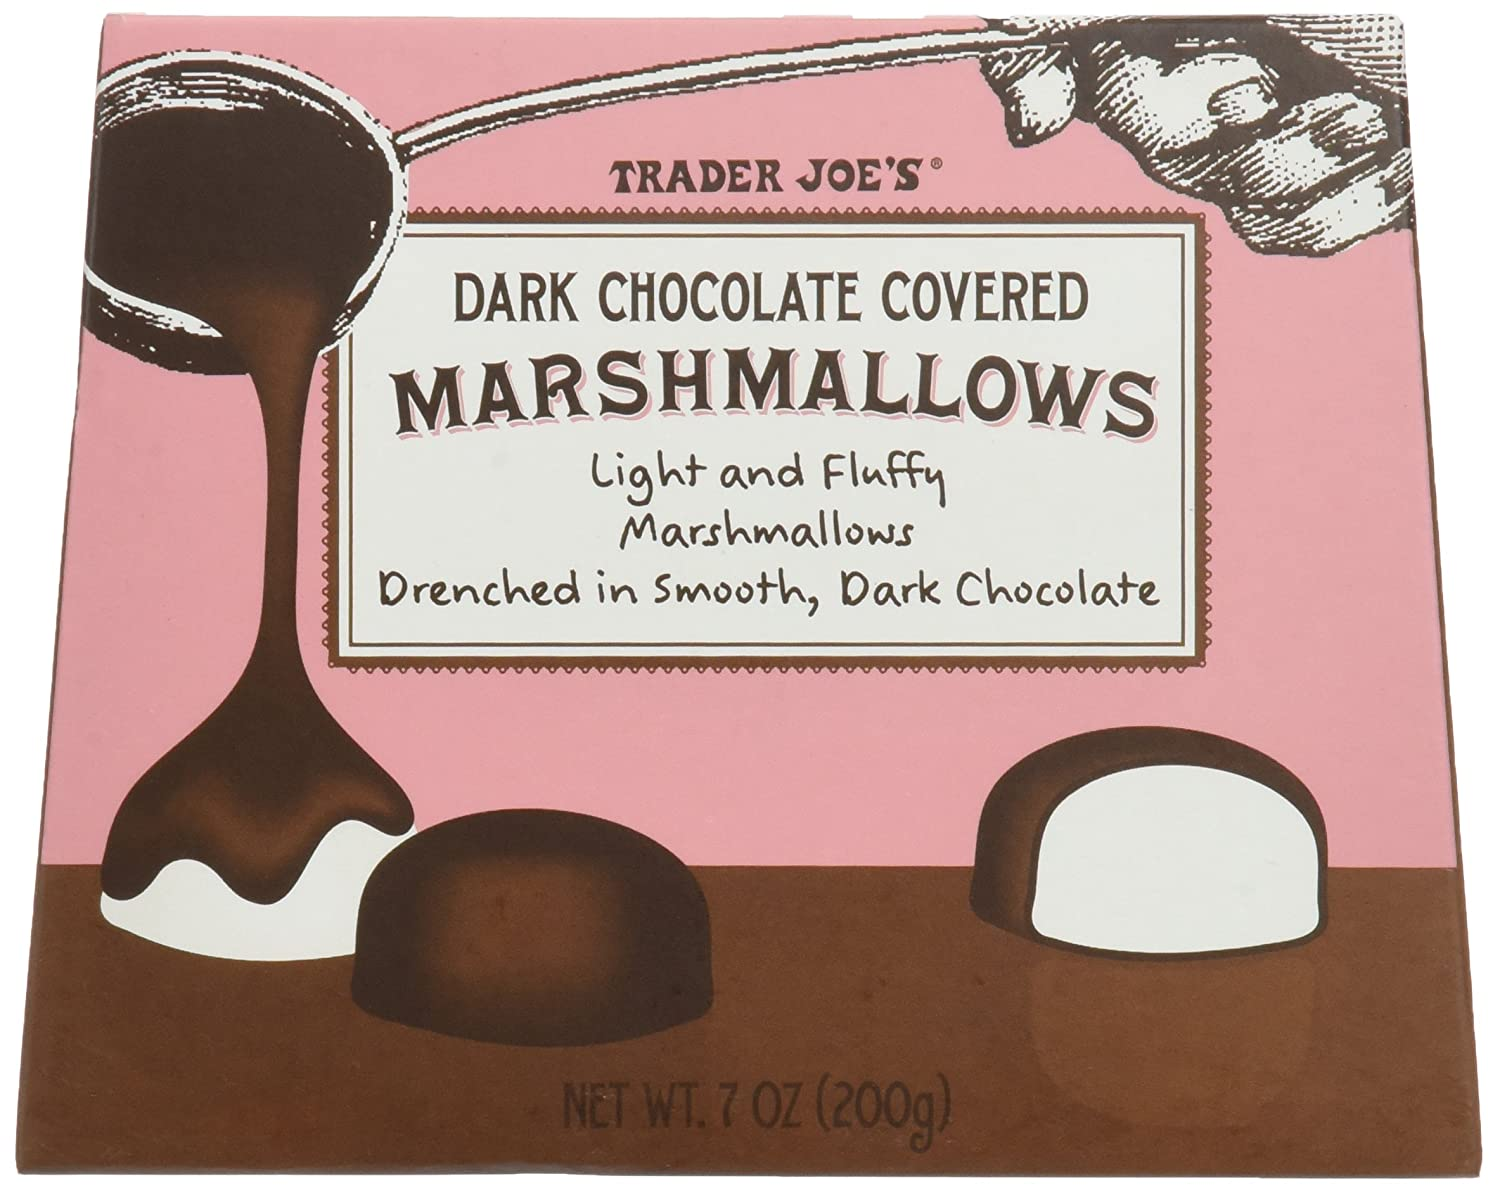 Image result for trader joe's chocolate covered marshmallows